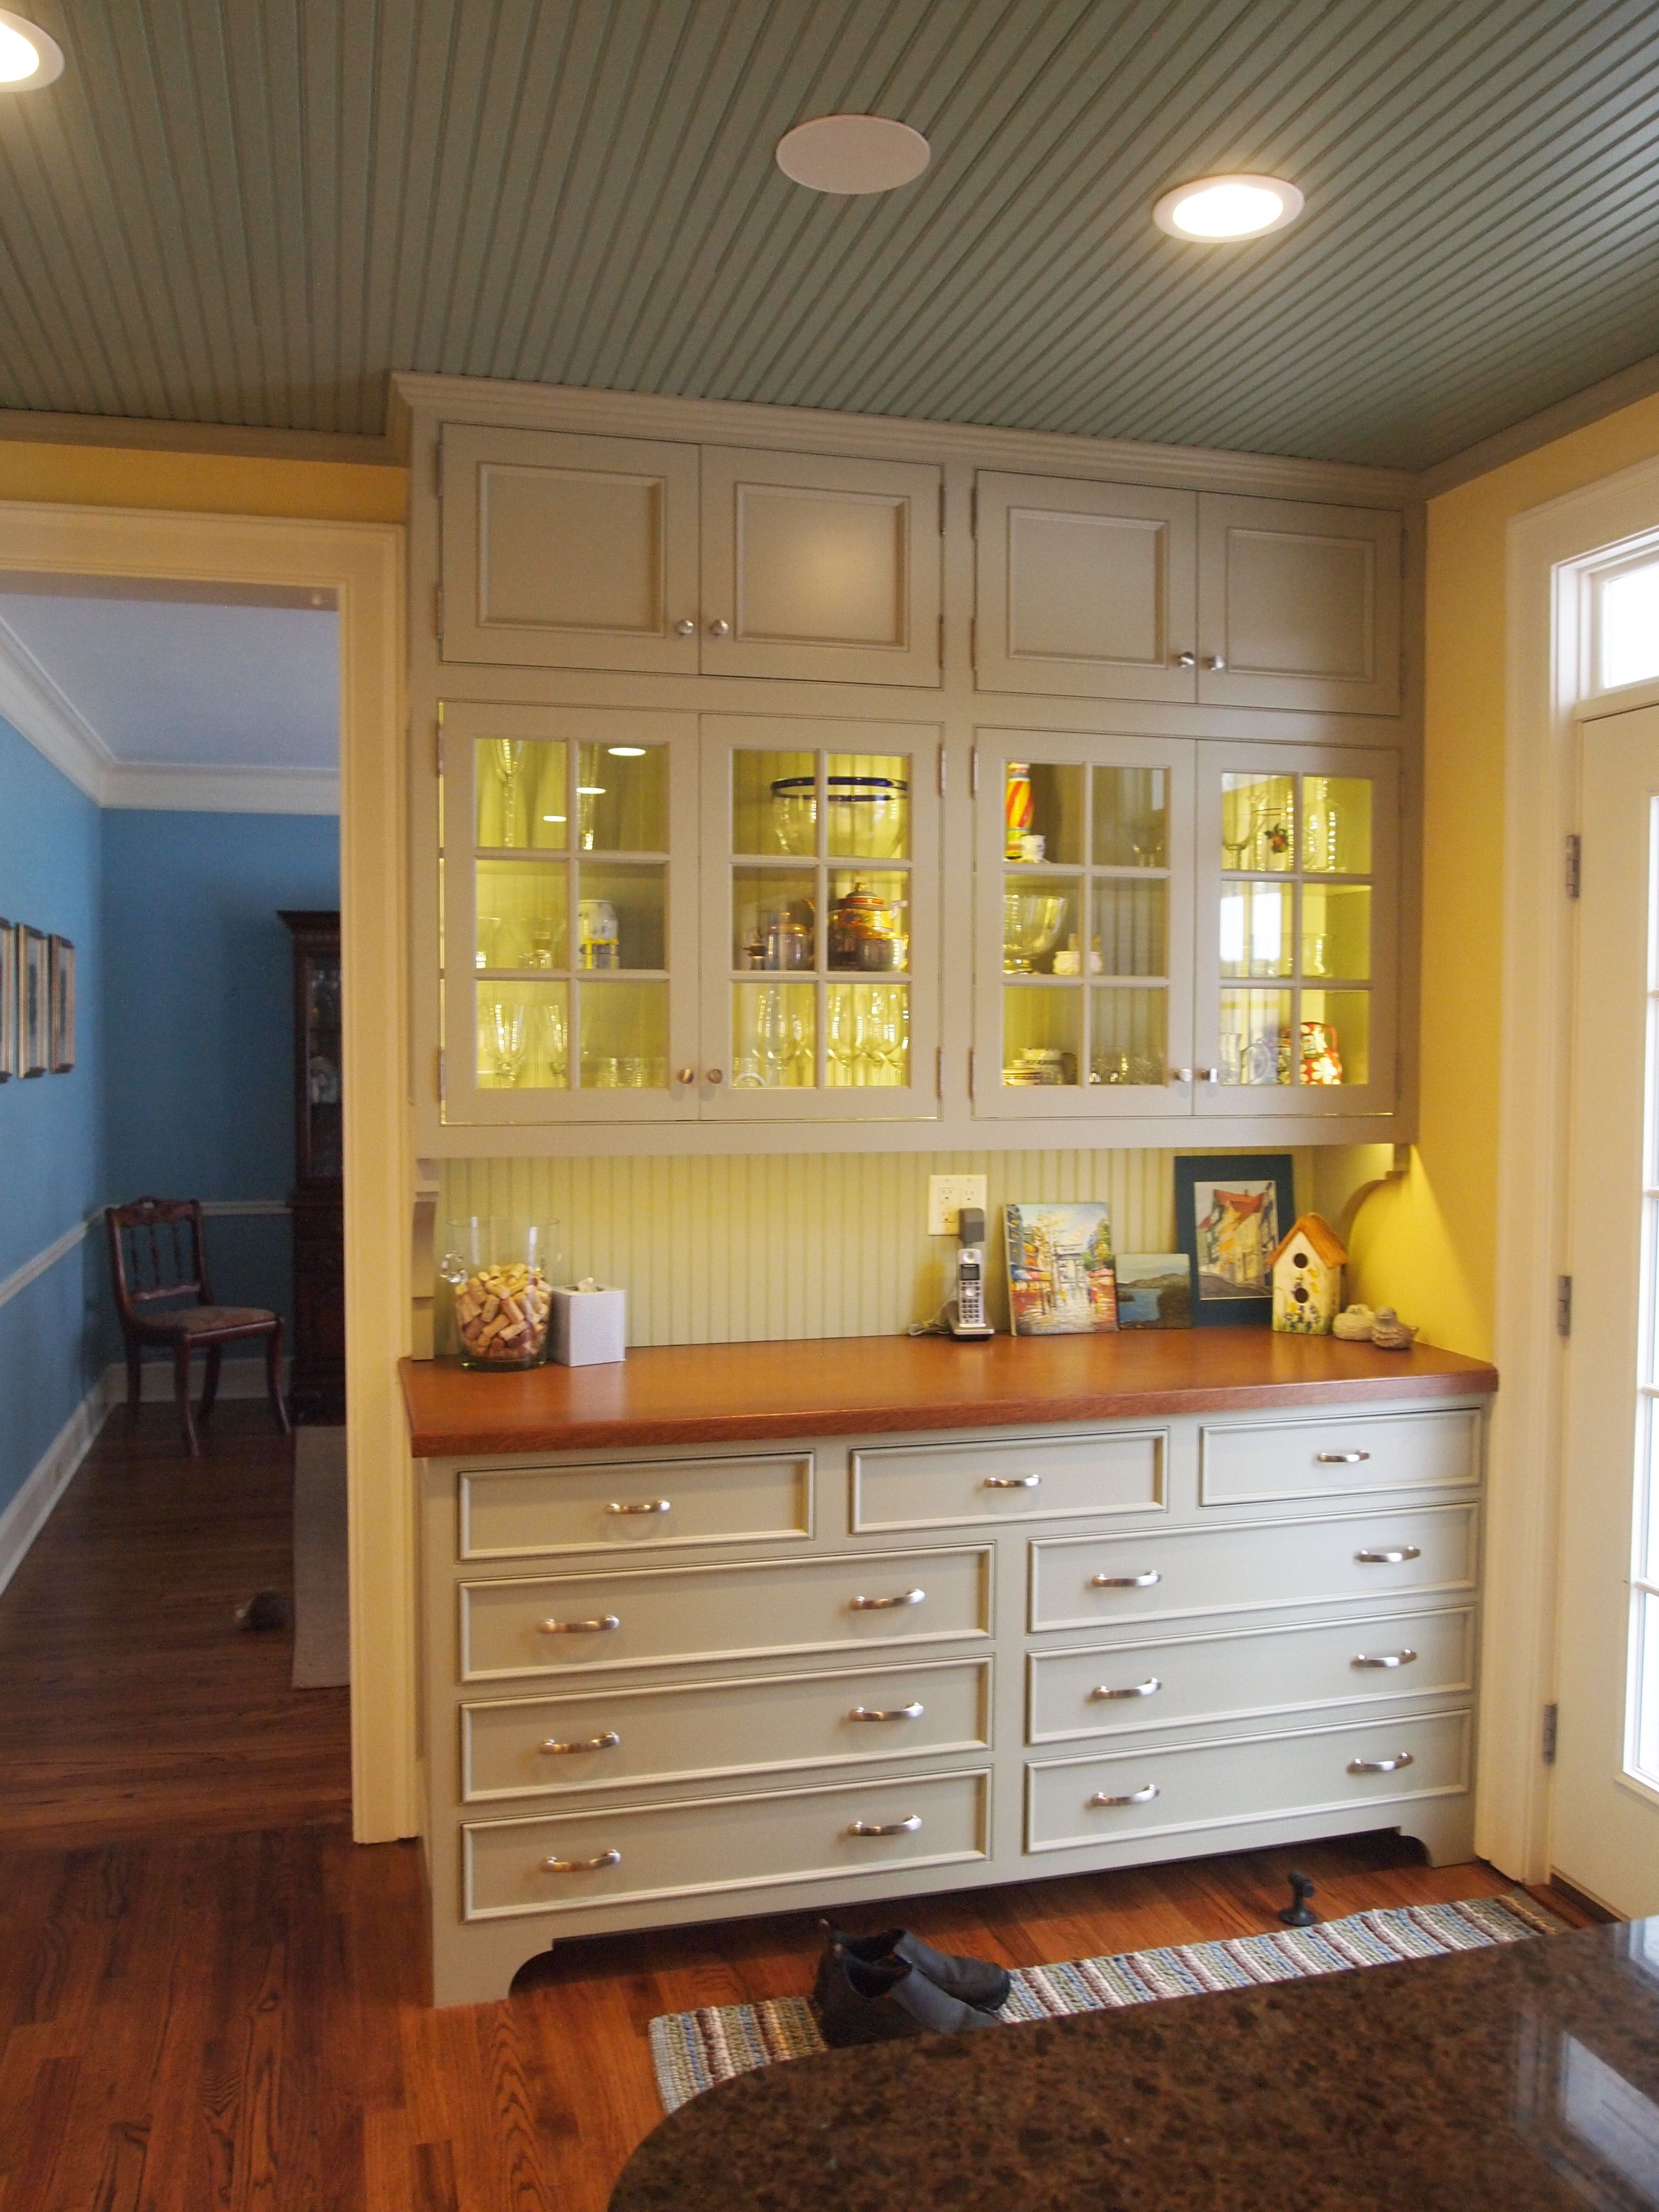 Mouser Custom Cabinetry Sideboard | Our Kitchens | Pinterest | Custom  Cabinetry, Kitchen Cabinetry And Kitchens